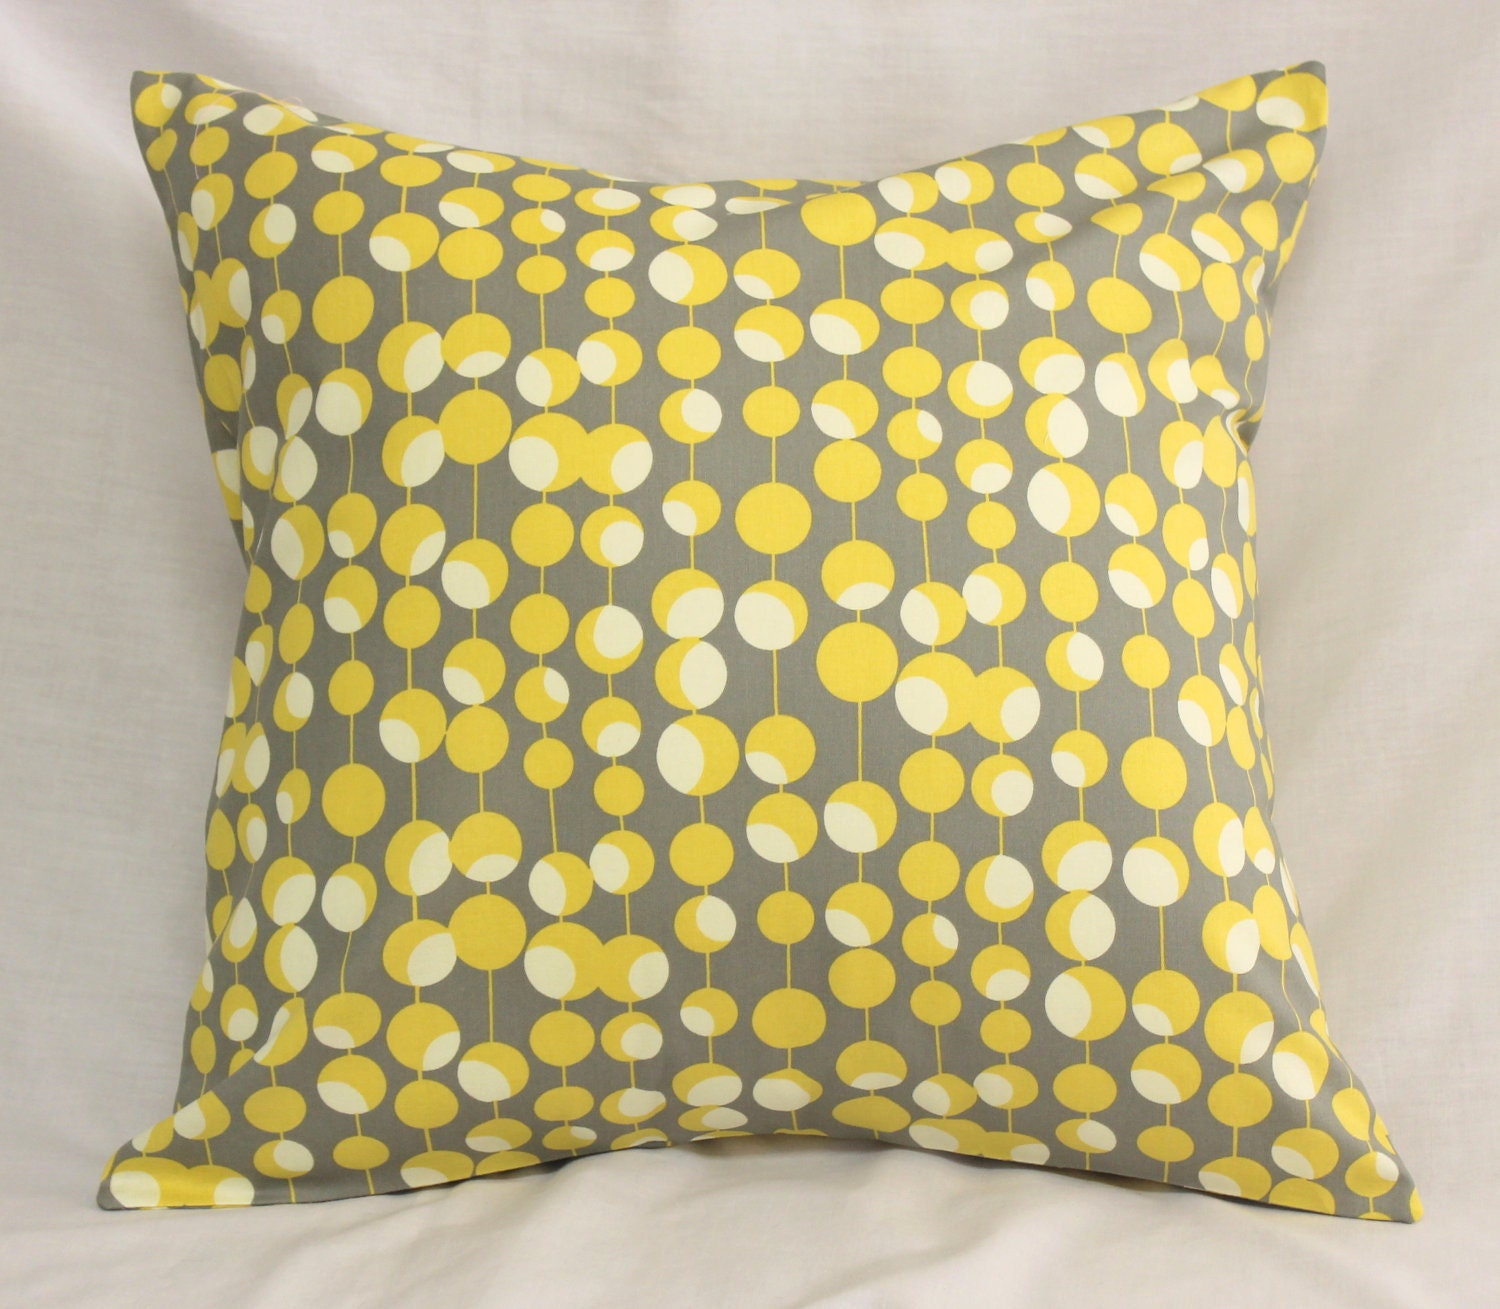 Yellow And Grey Throw Pillow Covers : Decorative Pillow Covers Dijon Mustard Yellow & Gray